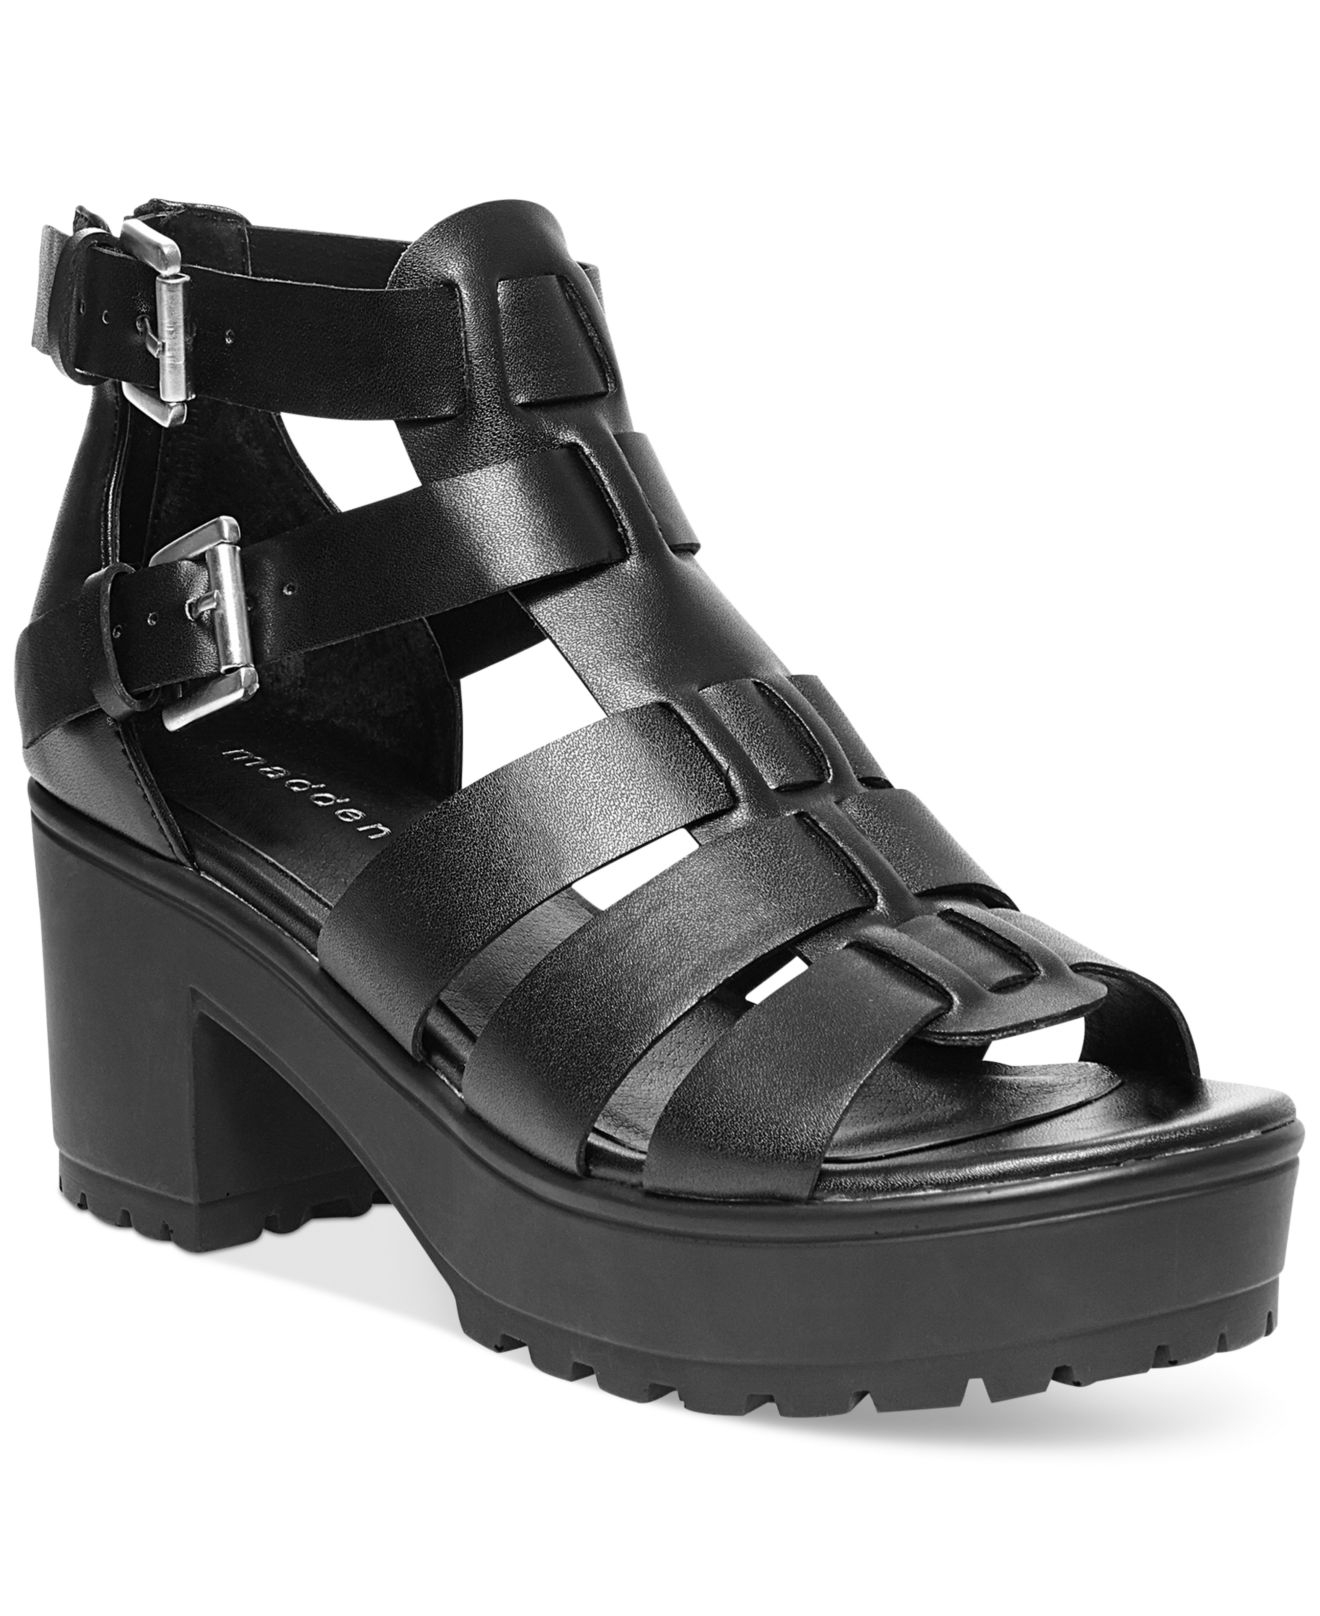 Madden Girl Daizyy Platform Lug Sandals In Black Lyst